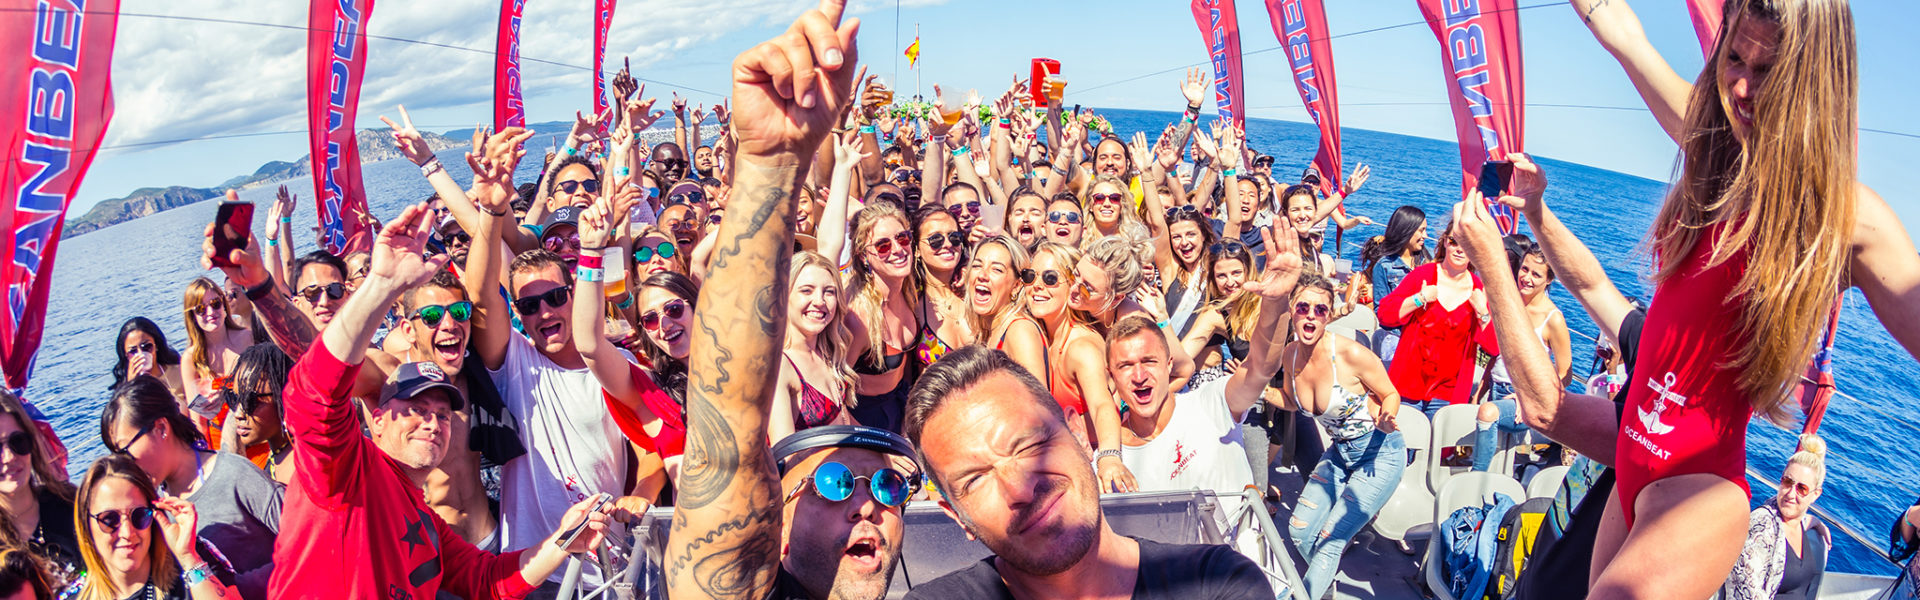 1 Oceanbeat Ibiza Boat Party 2